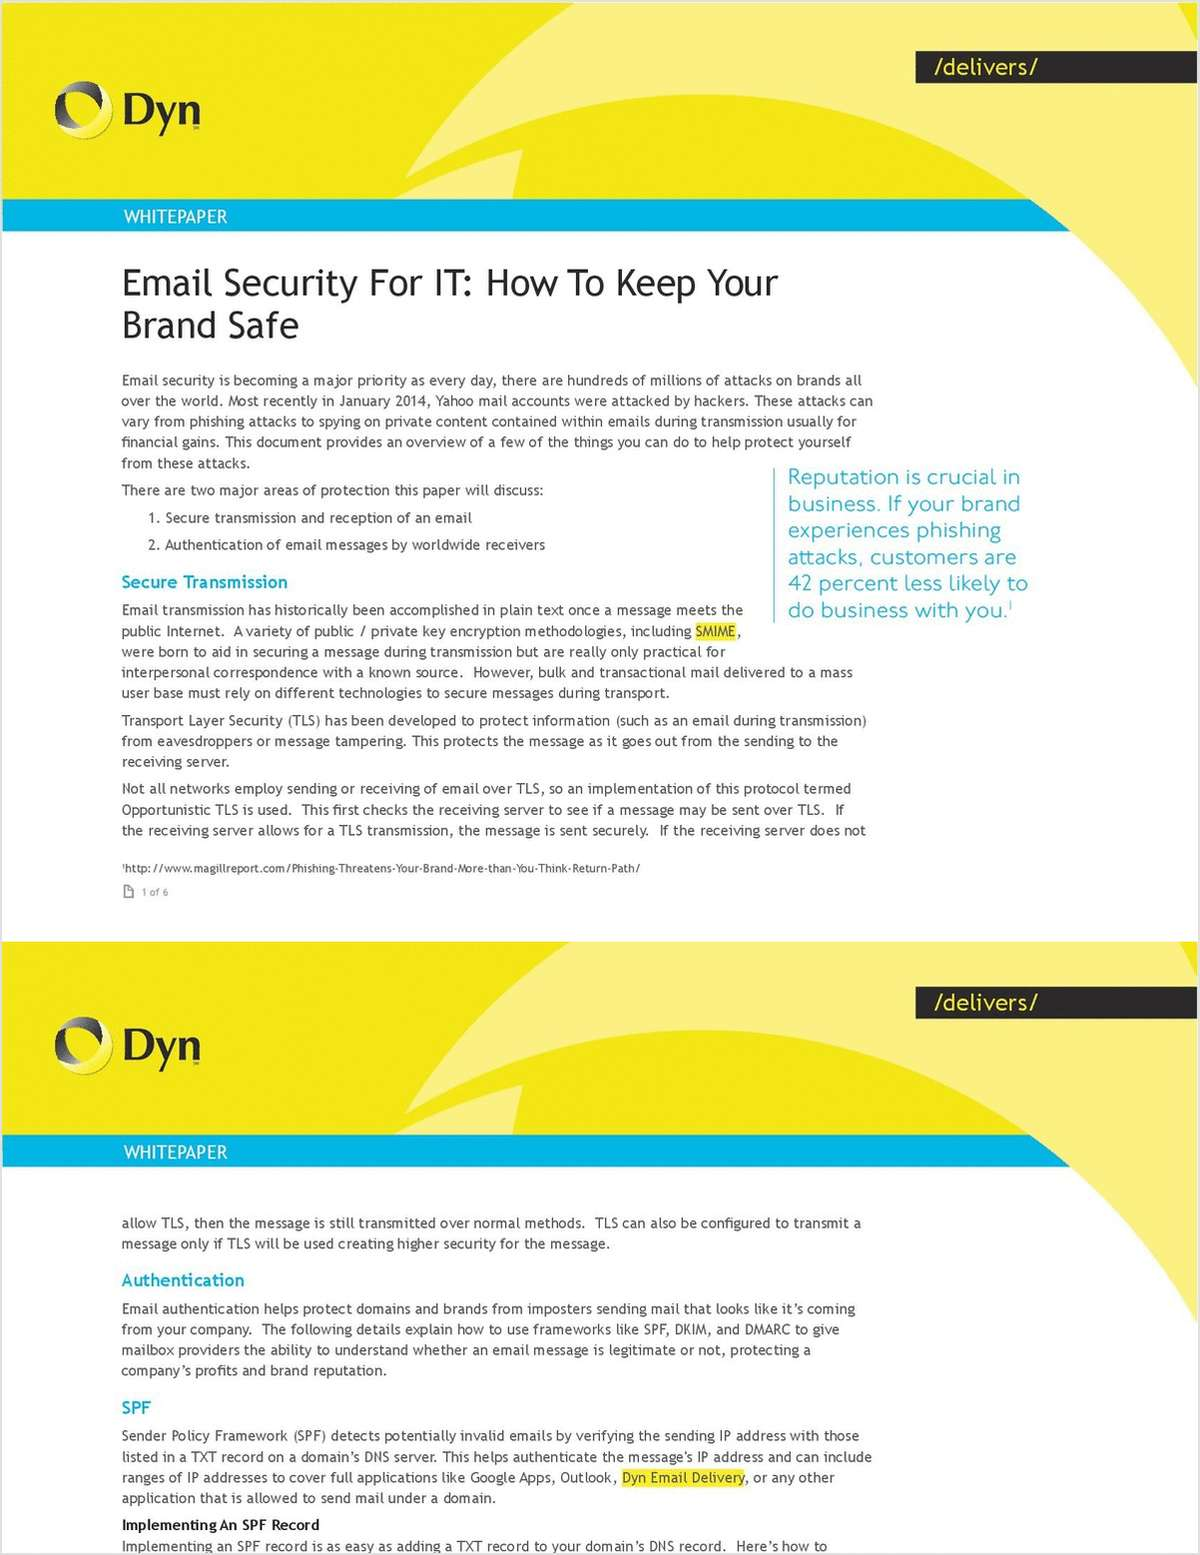 Protecting Your Brand & Reputation: A Guide To Email Security For IT